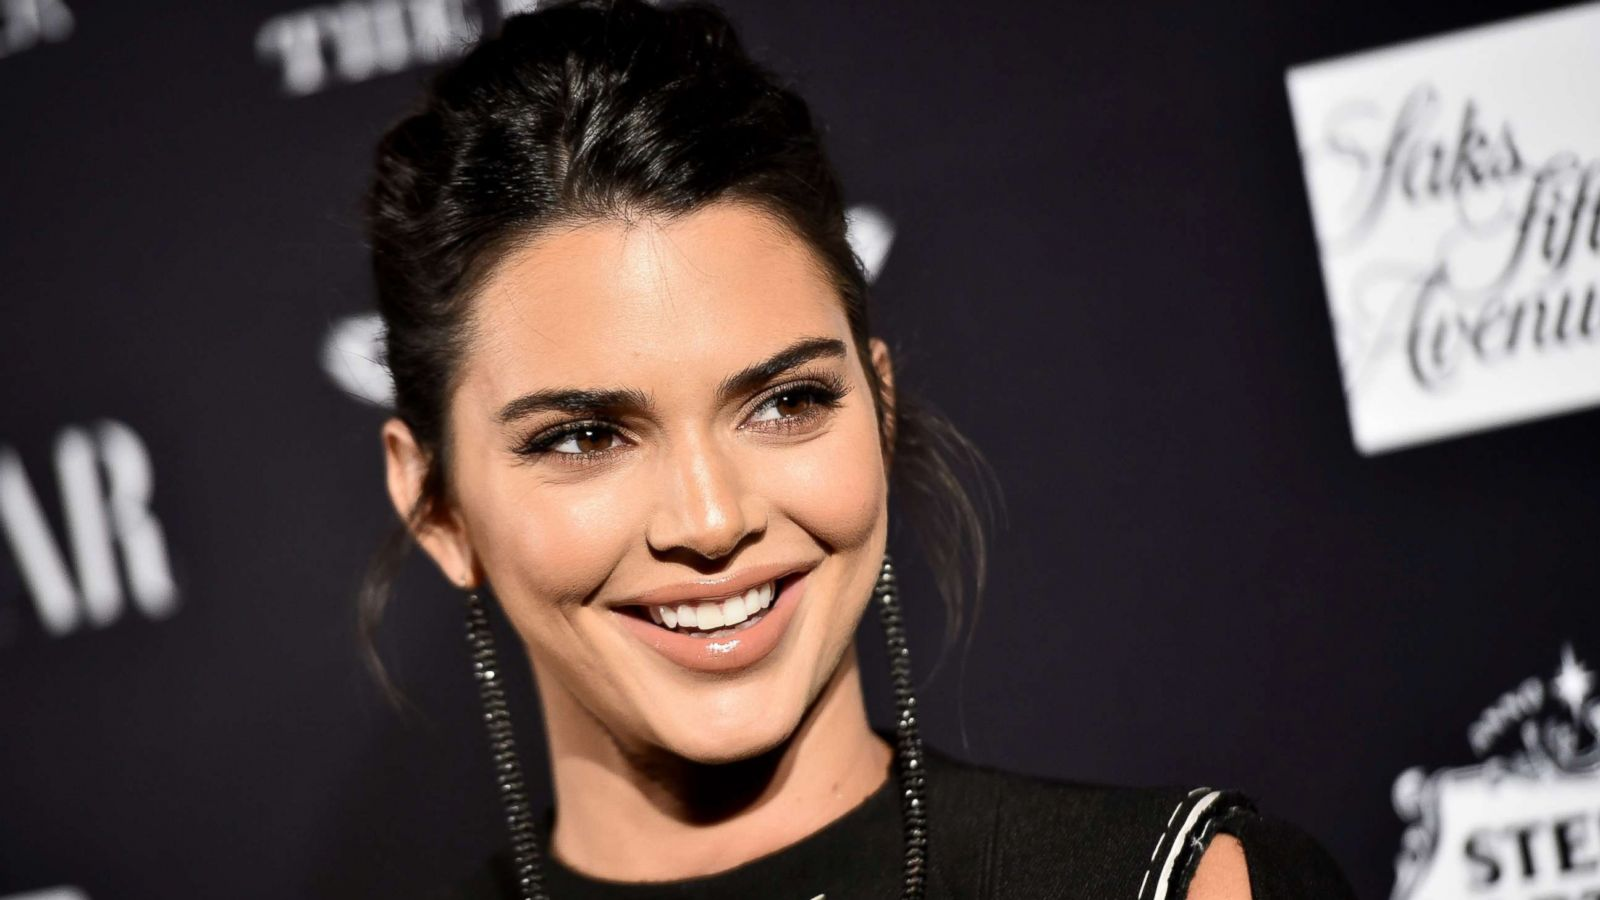 The Real Reason Kendall Jenner Will Never Go to College